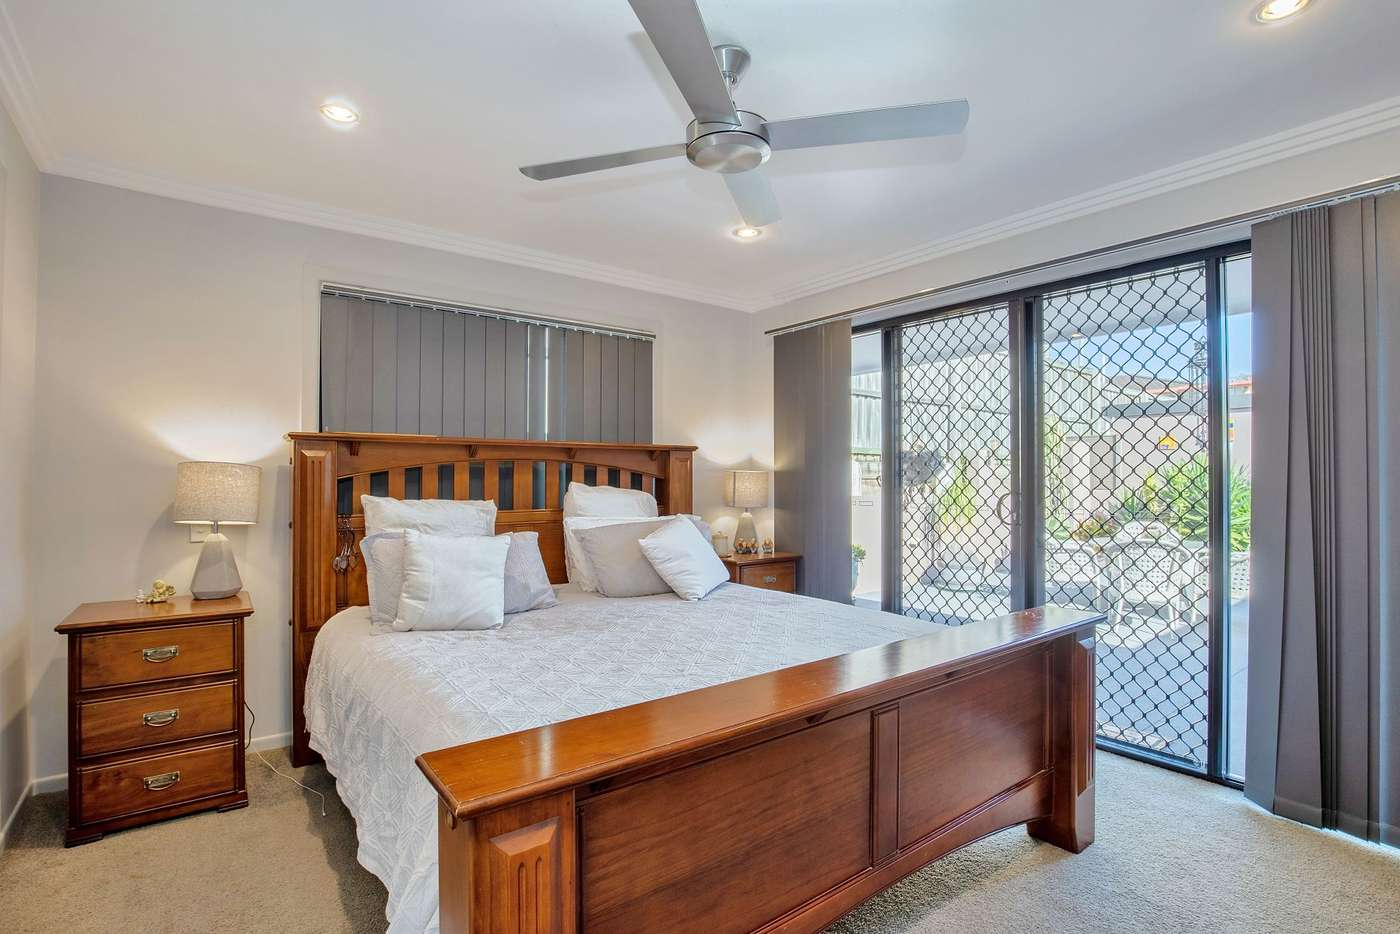 Sixth view of Homely house listing, 2 The Glade, Labrador QLD 4215